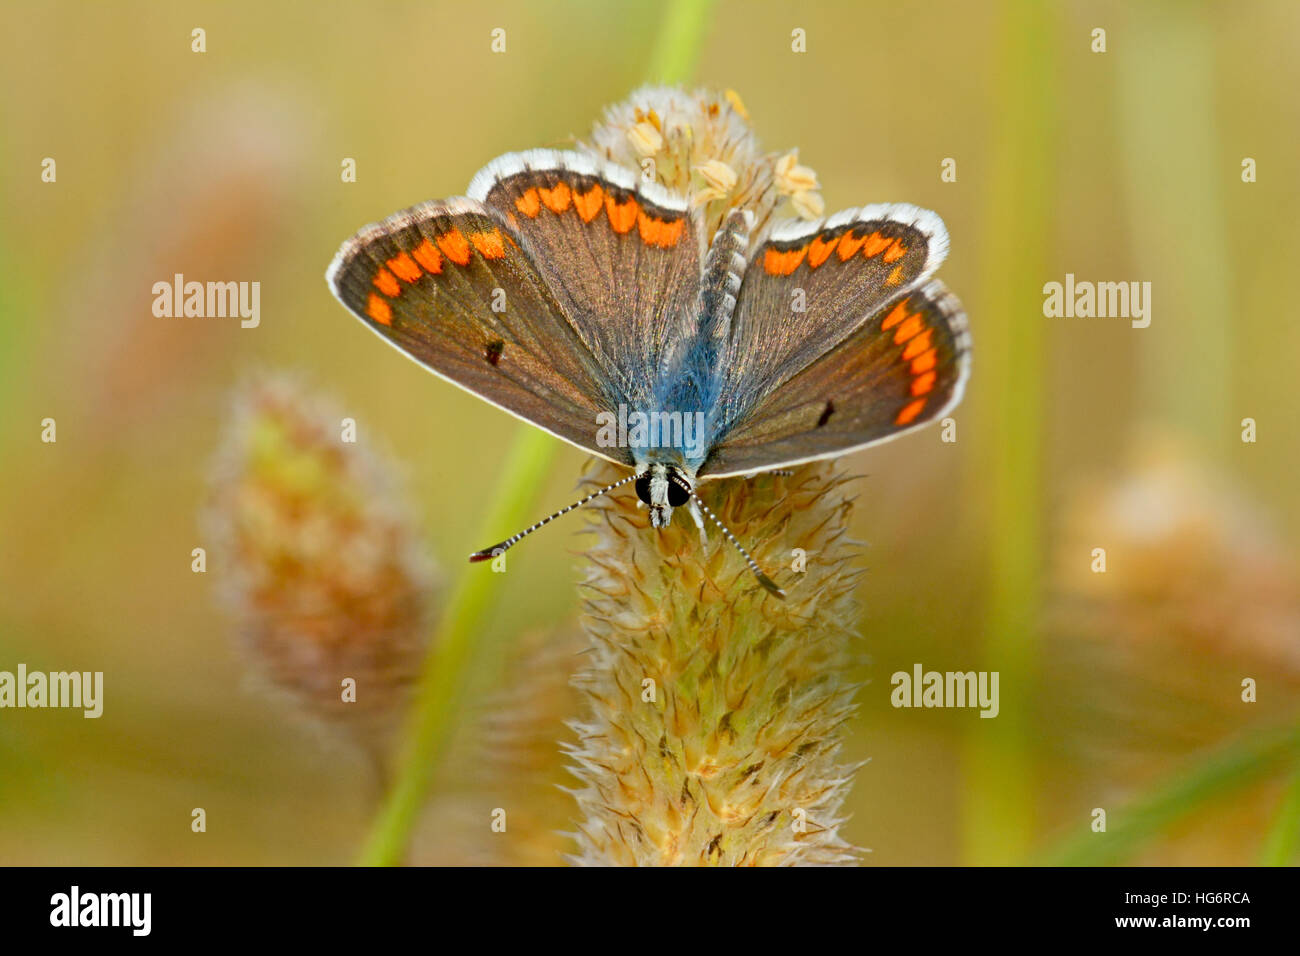 aricia agestis butterfly, Brown Argus - Stock Image